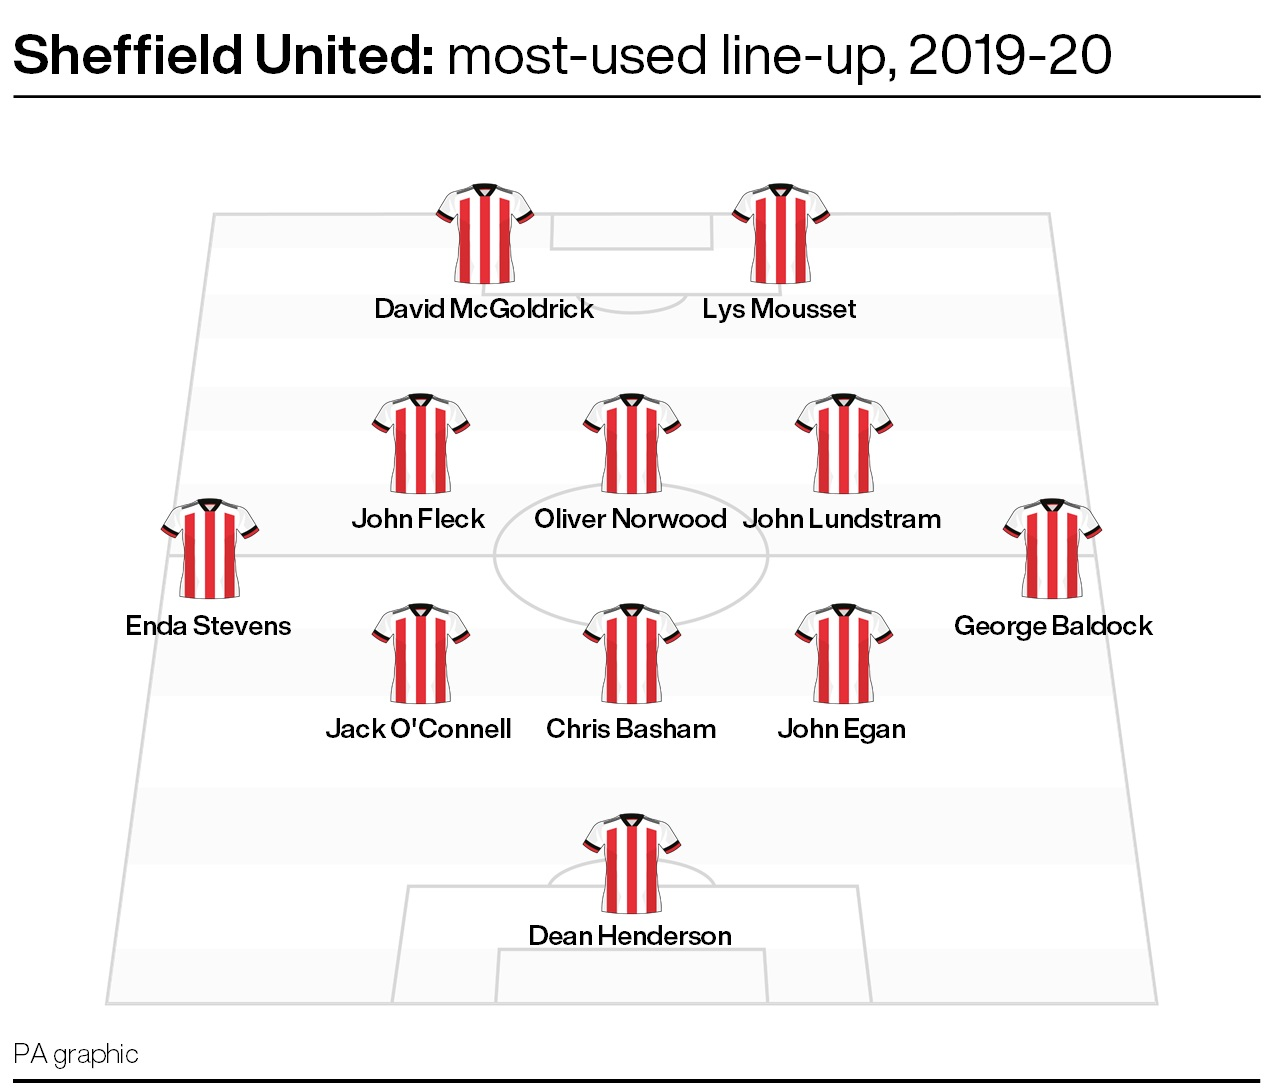 Sheffield United's most-used line-up from 2019-20